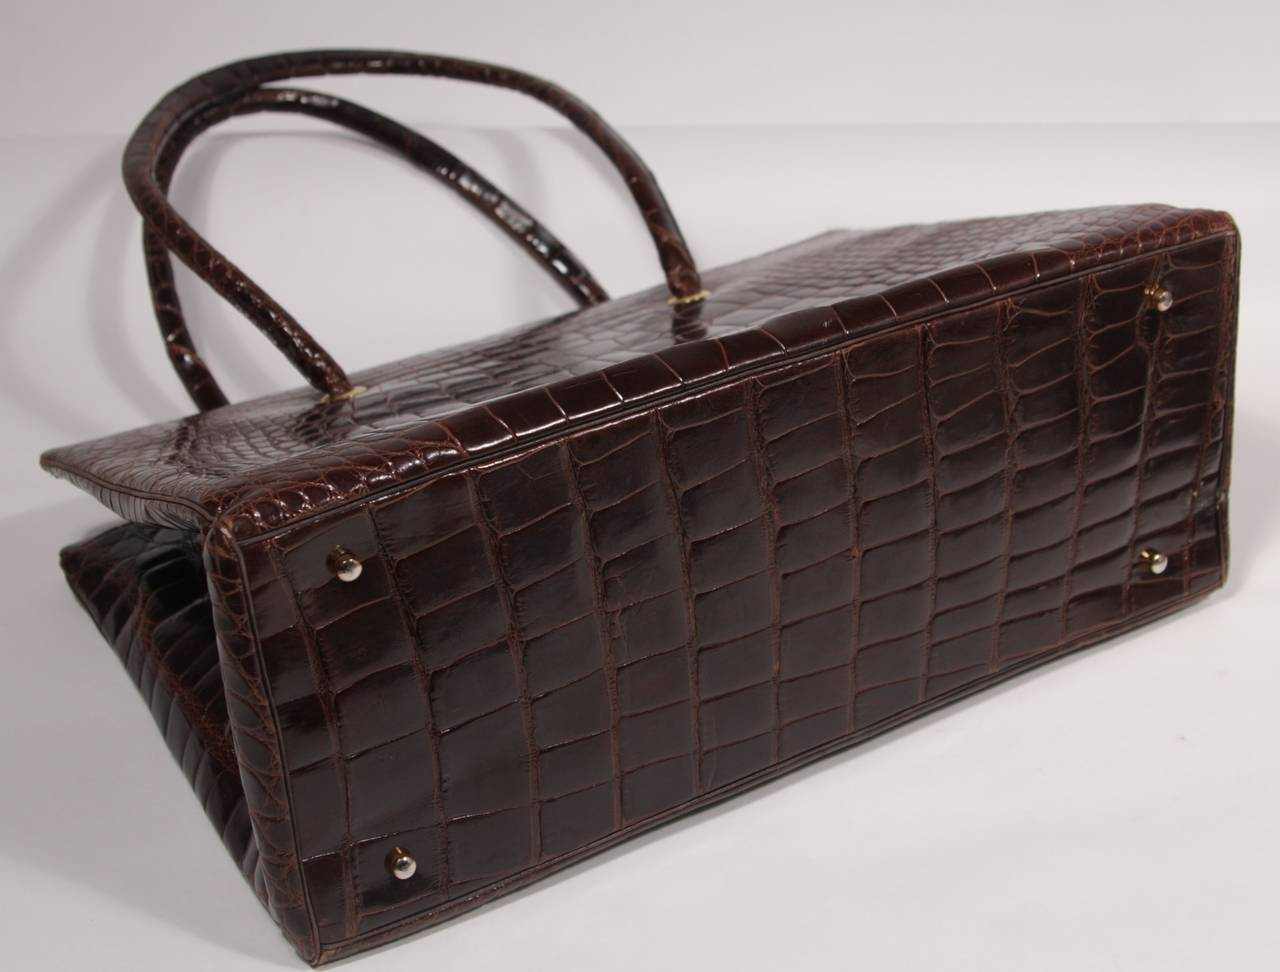 Judith Leiber Extra Large Chocolate Crocodile Shoulder Bag with Snap Top 7